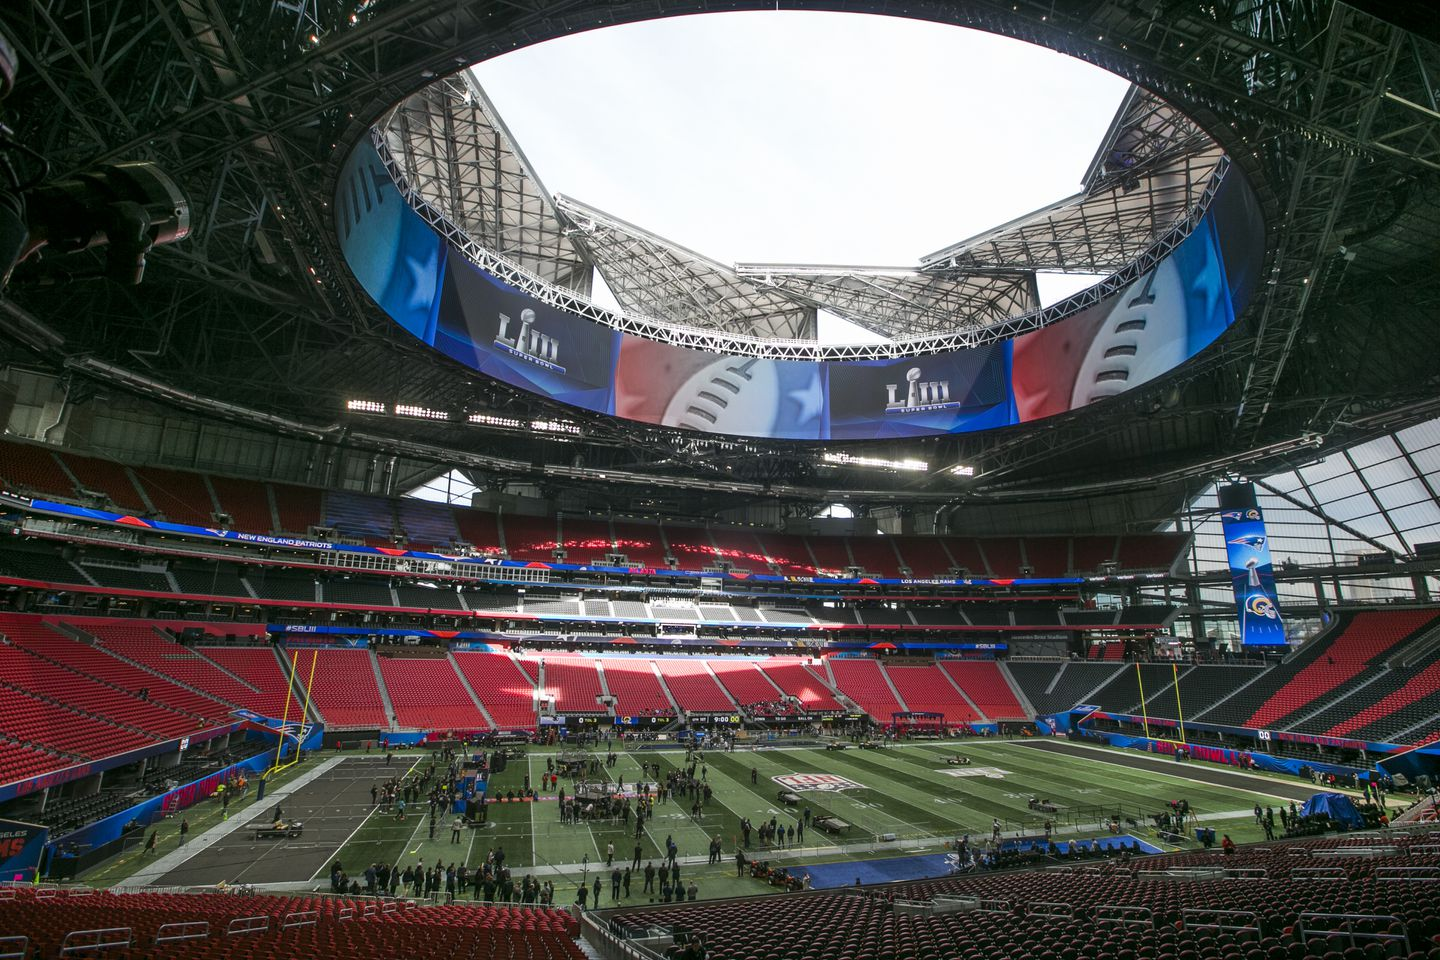 Here S The Plan For The Mercedes Benz Stadium Roof During The Super Bowl The Boston Globe